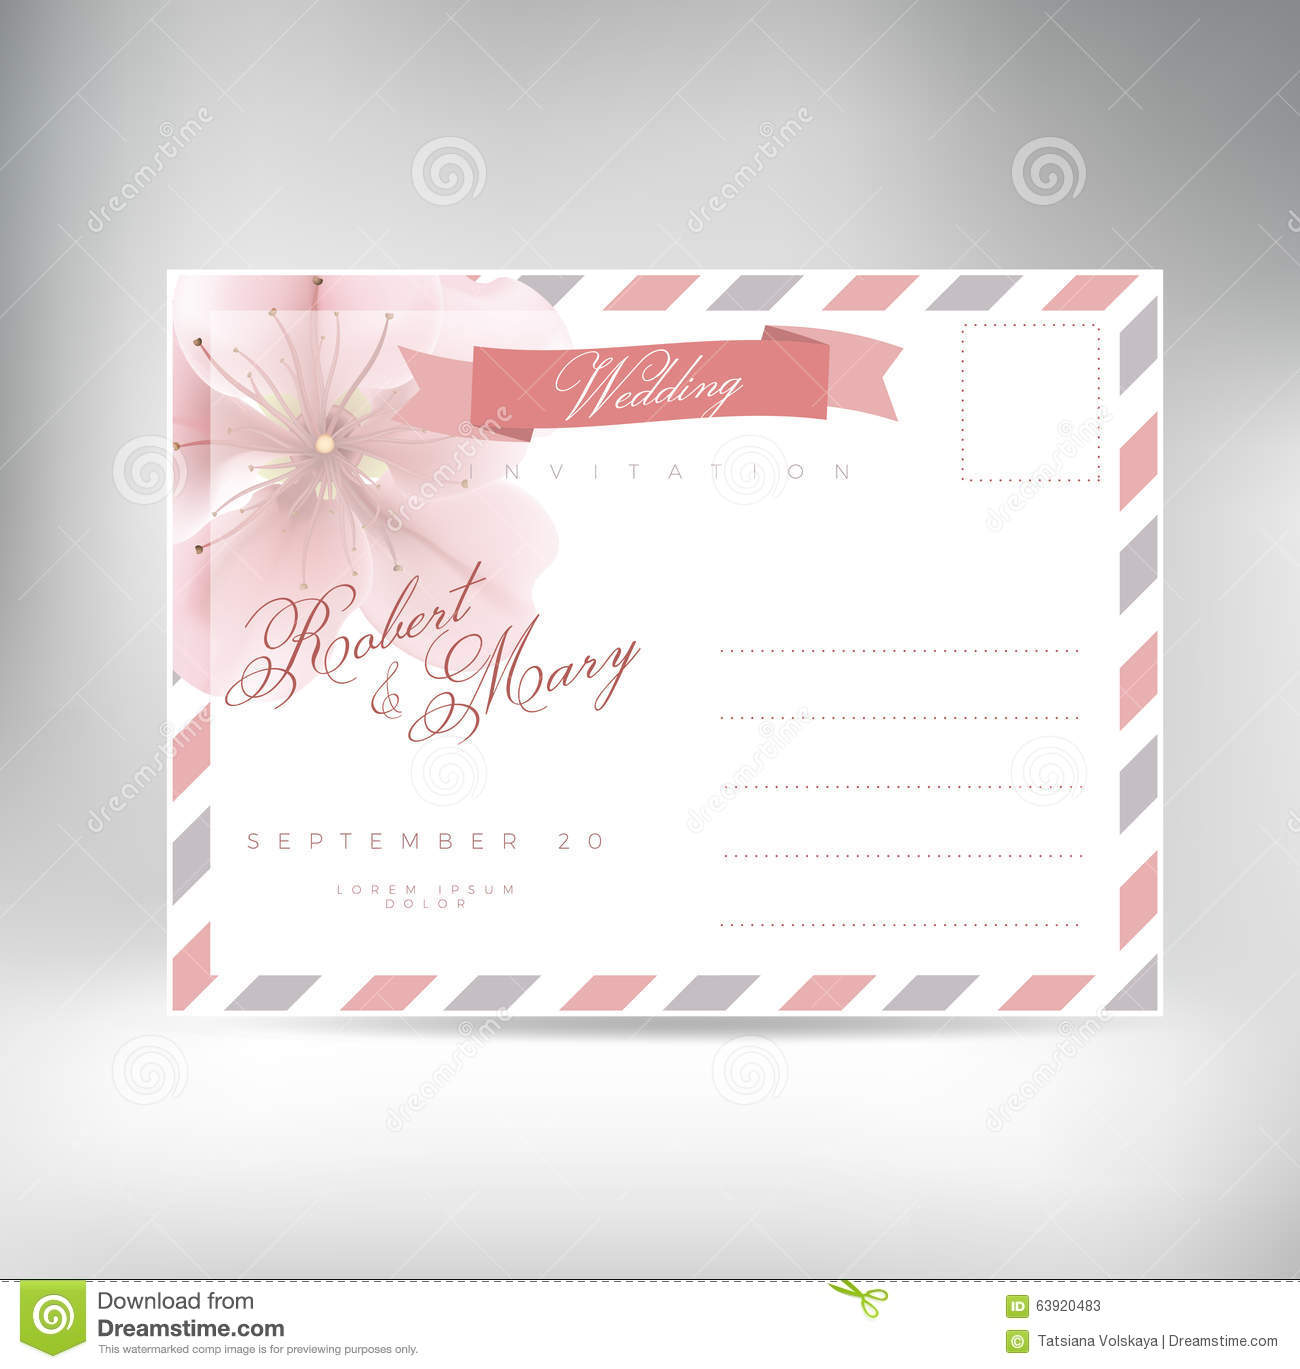 Wedding Invitation Postcard: Vintage Postcard Background Vector Template For Wedding